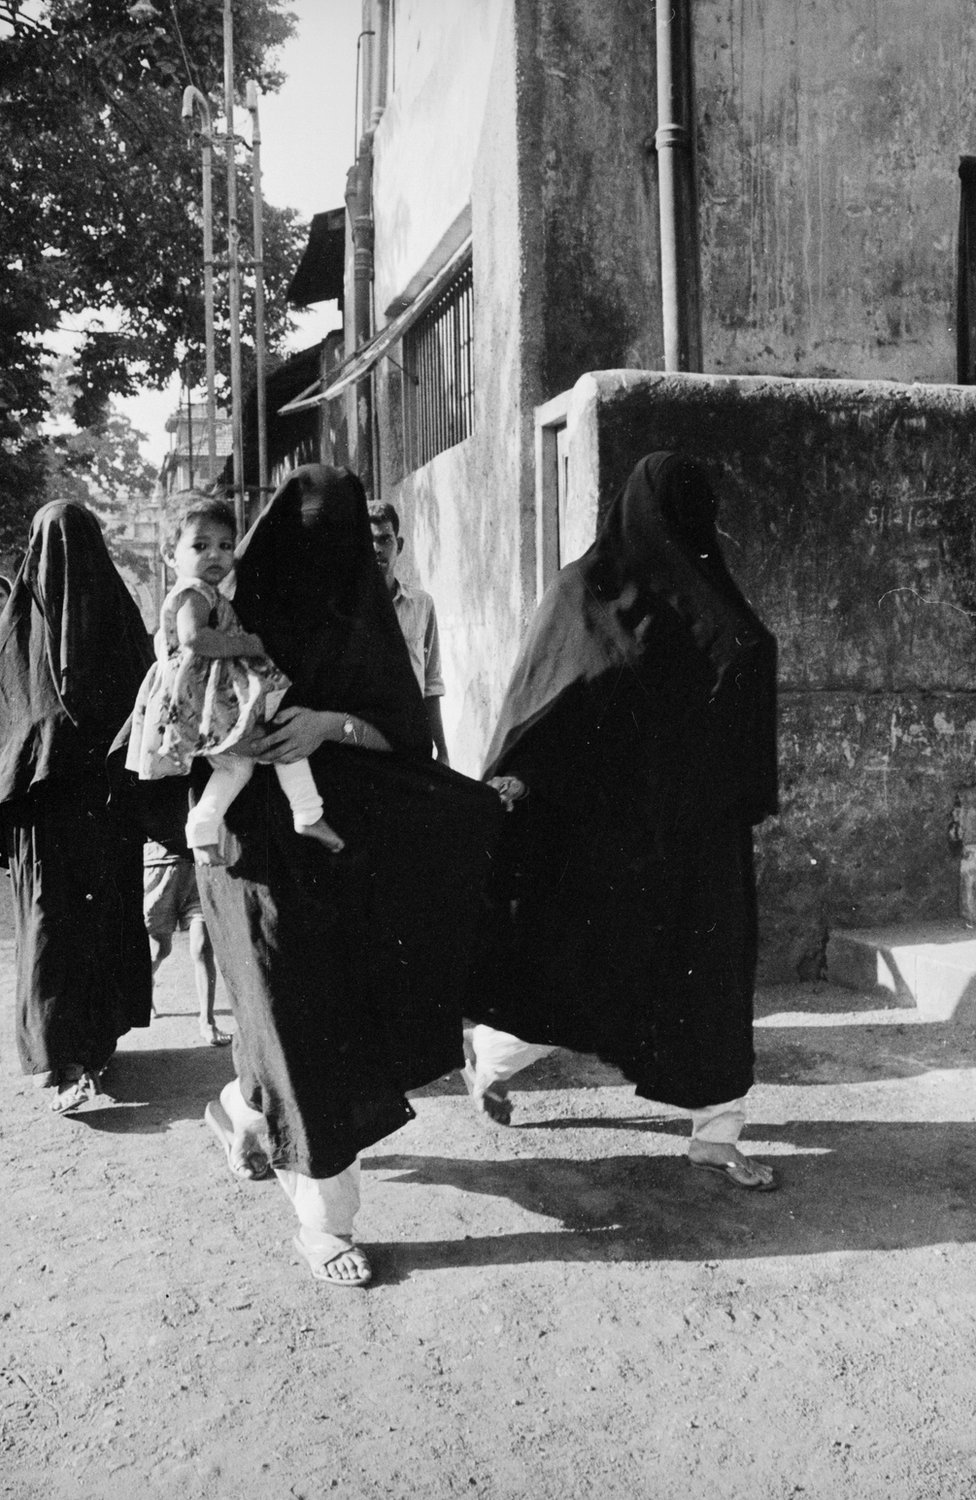 Women in burkas are on their way to vote during the Indian elections in 1967.